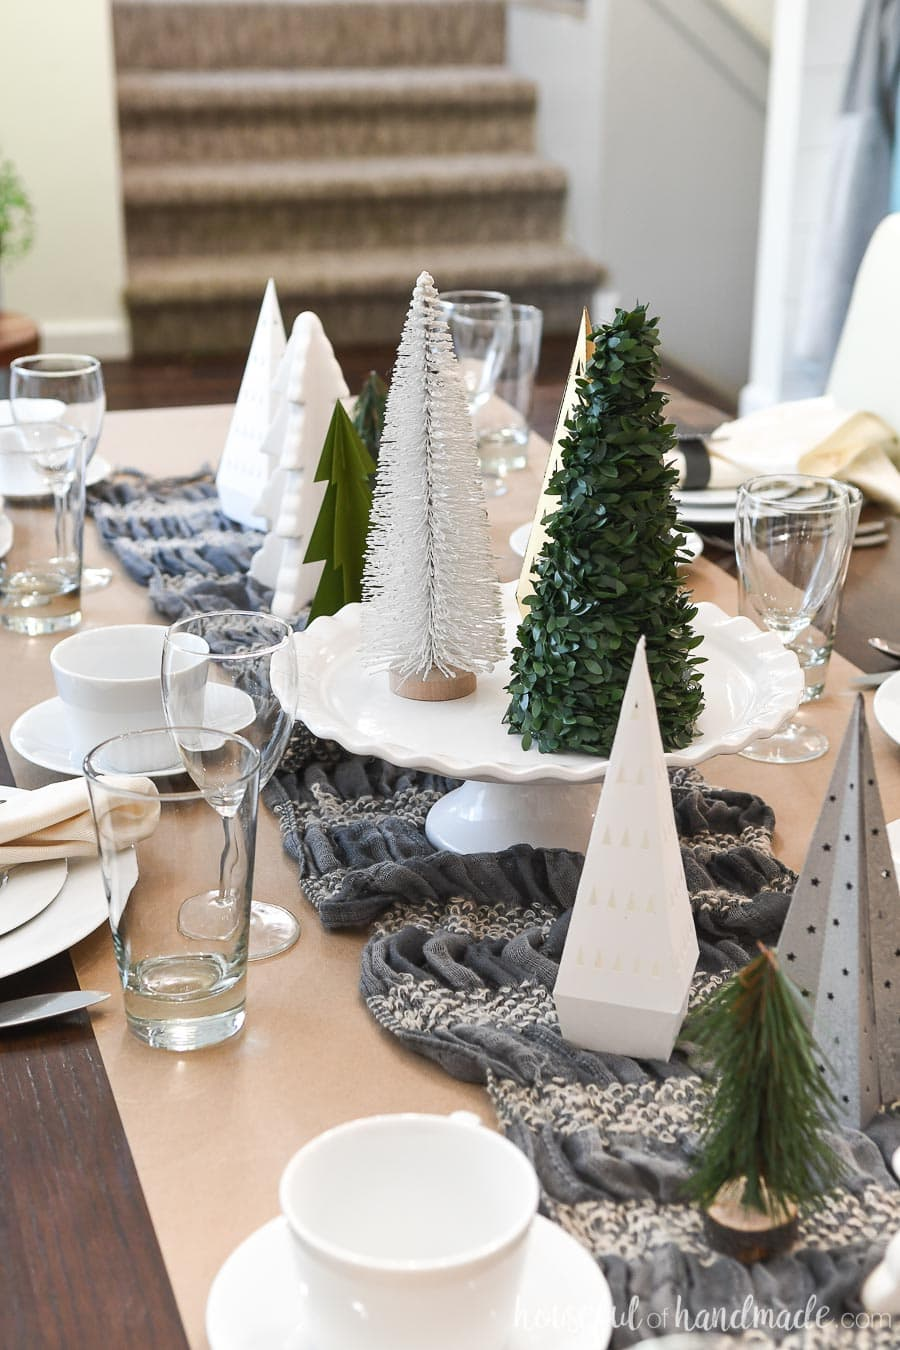 Paper Christmas trees decorating the centerpiece of a winter table.